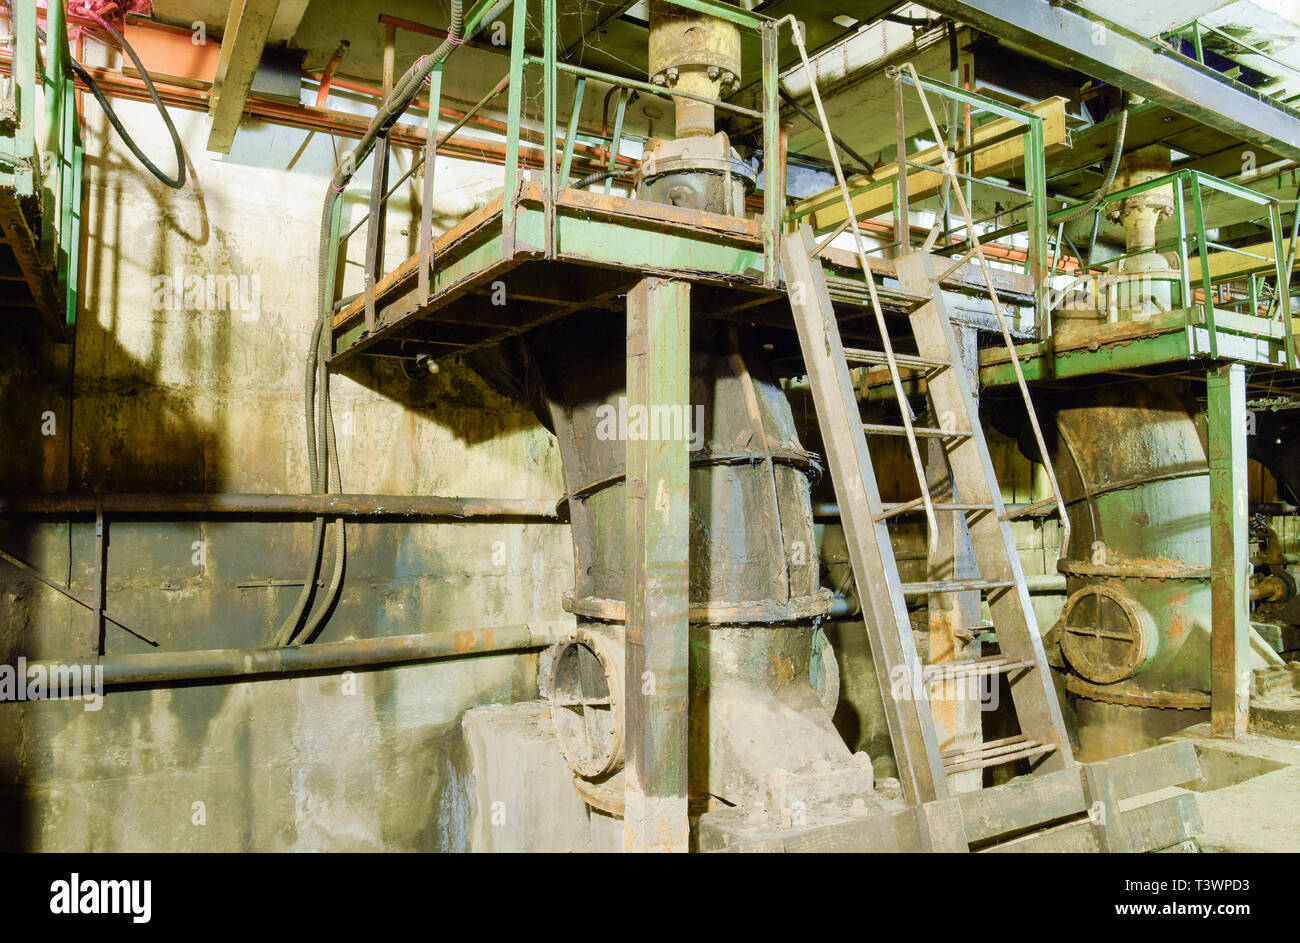 Basement of a water pumping station. Abandoned post-apocalyptic view of the basement pumping rooms. - Stock Image